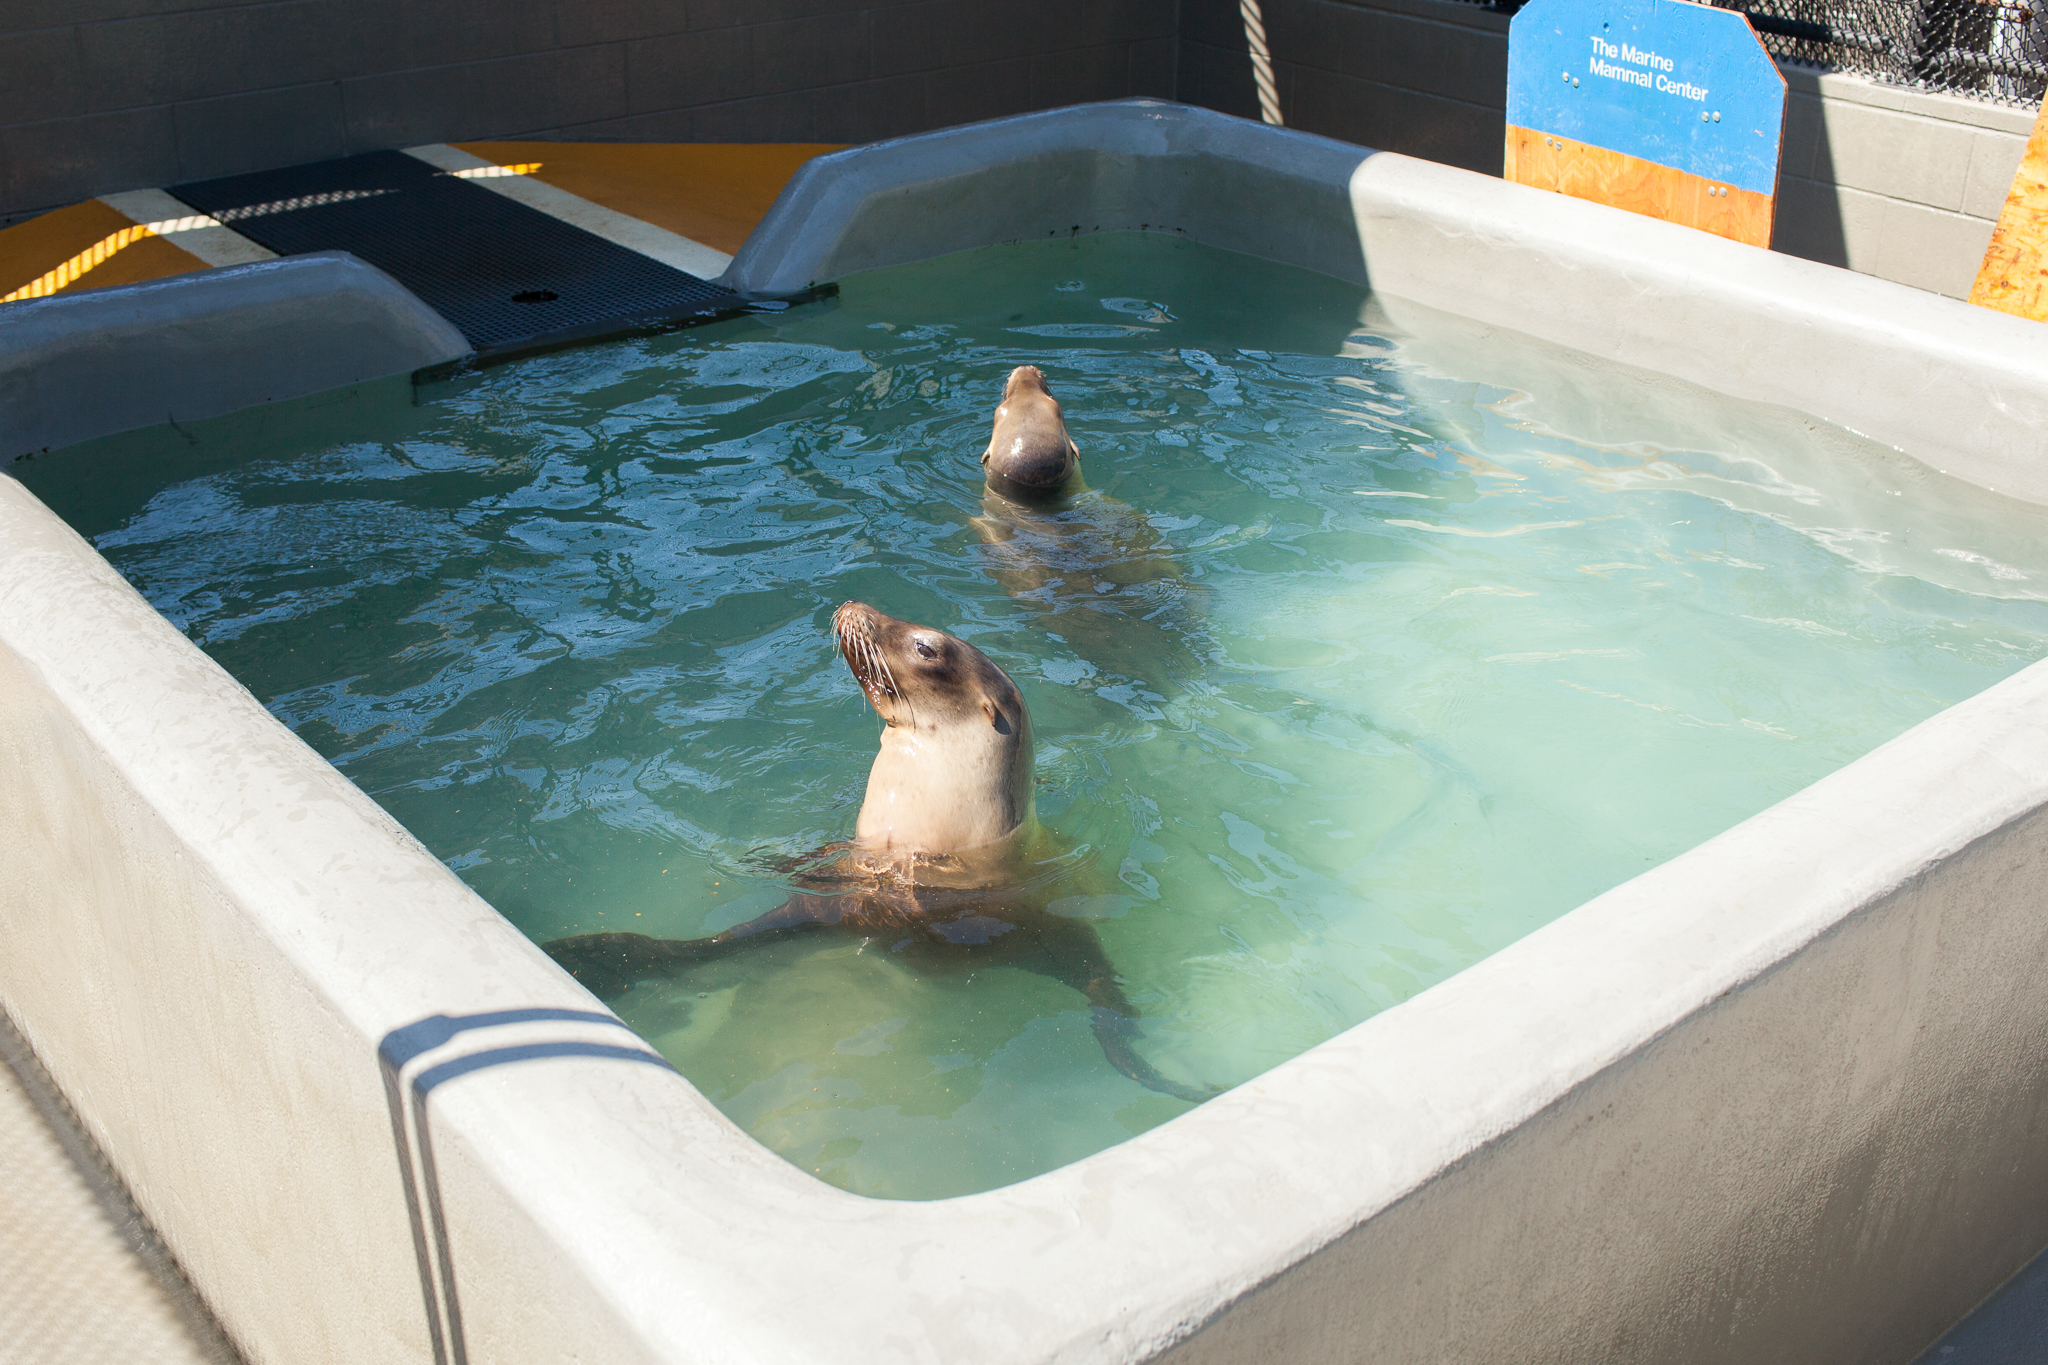 A pair of sea lion patients share a pool while undergoing rehabilitation at The Marine Mammal Center.